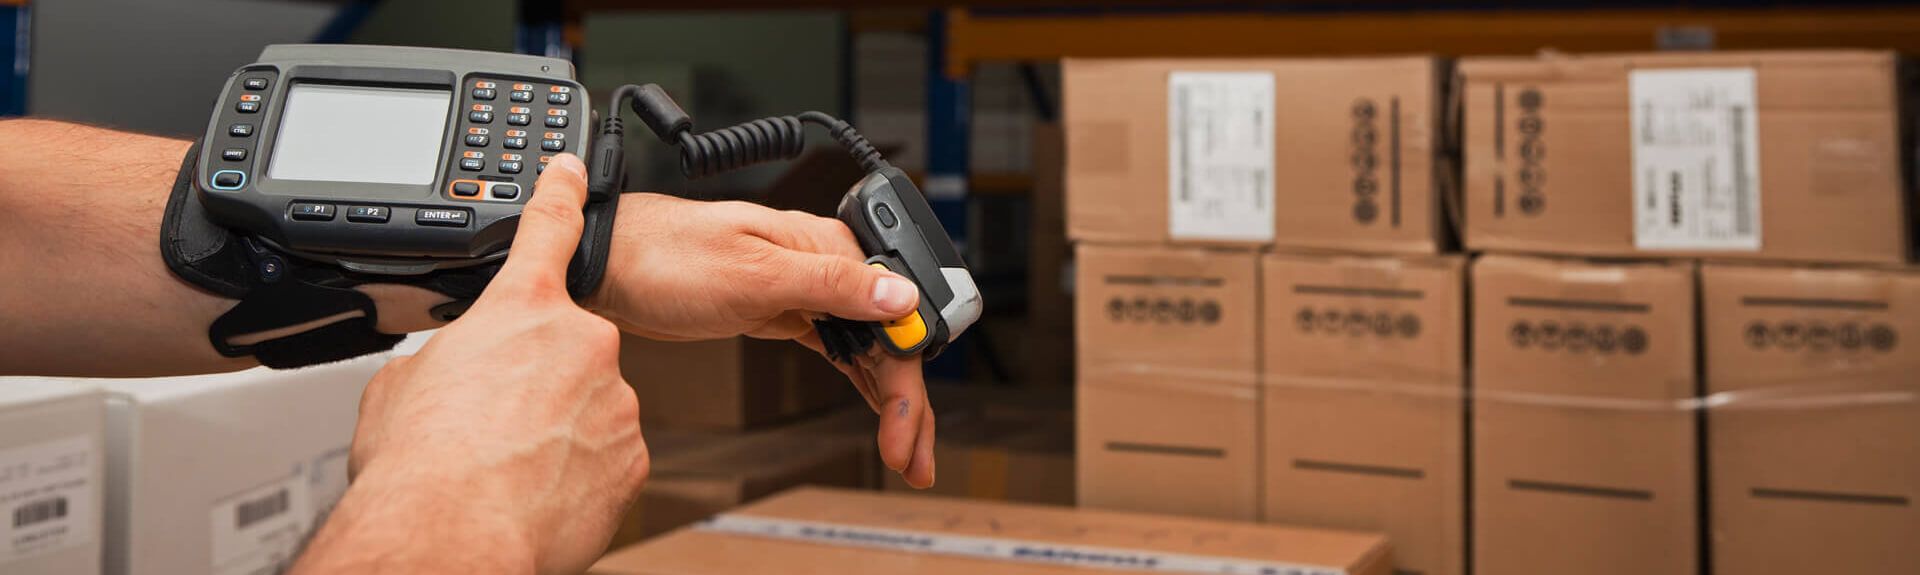 Our 3PL Value Added Services include Repacking, Display Building,Kitting & More